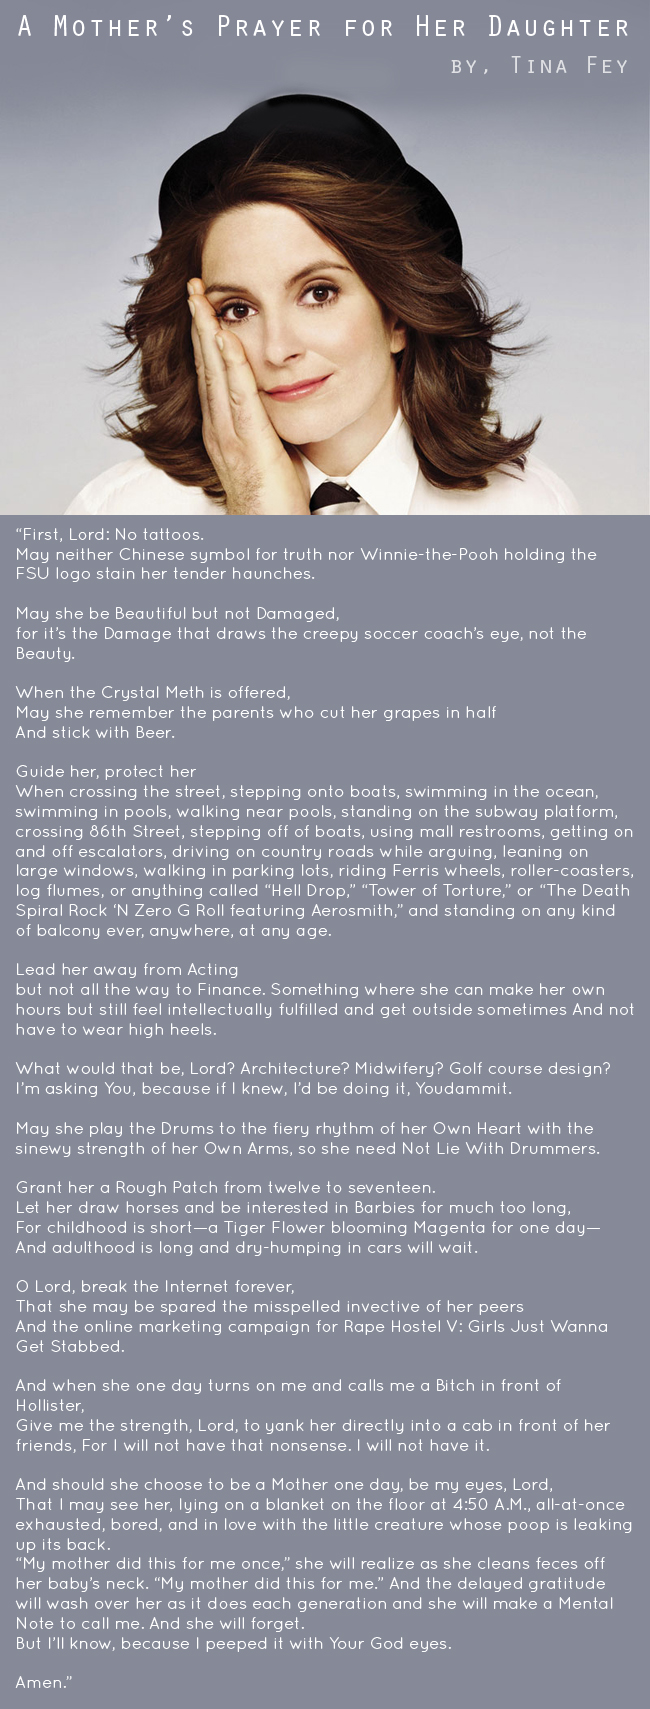 """Tina Fey's """"A Mother's Prayer for Her Daughter"""" // thepapermama.com"""